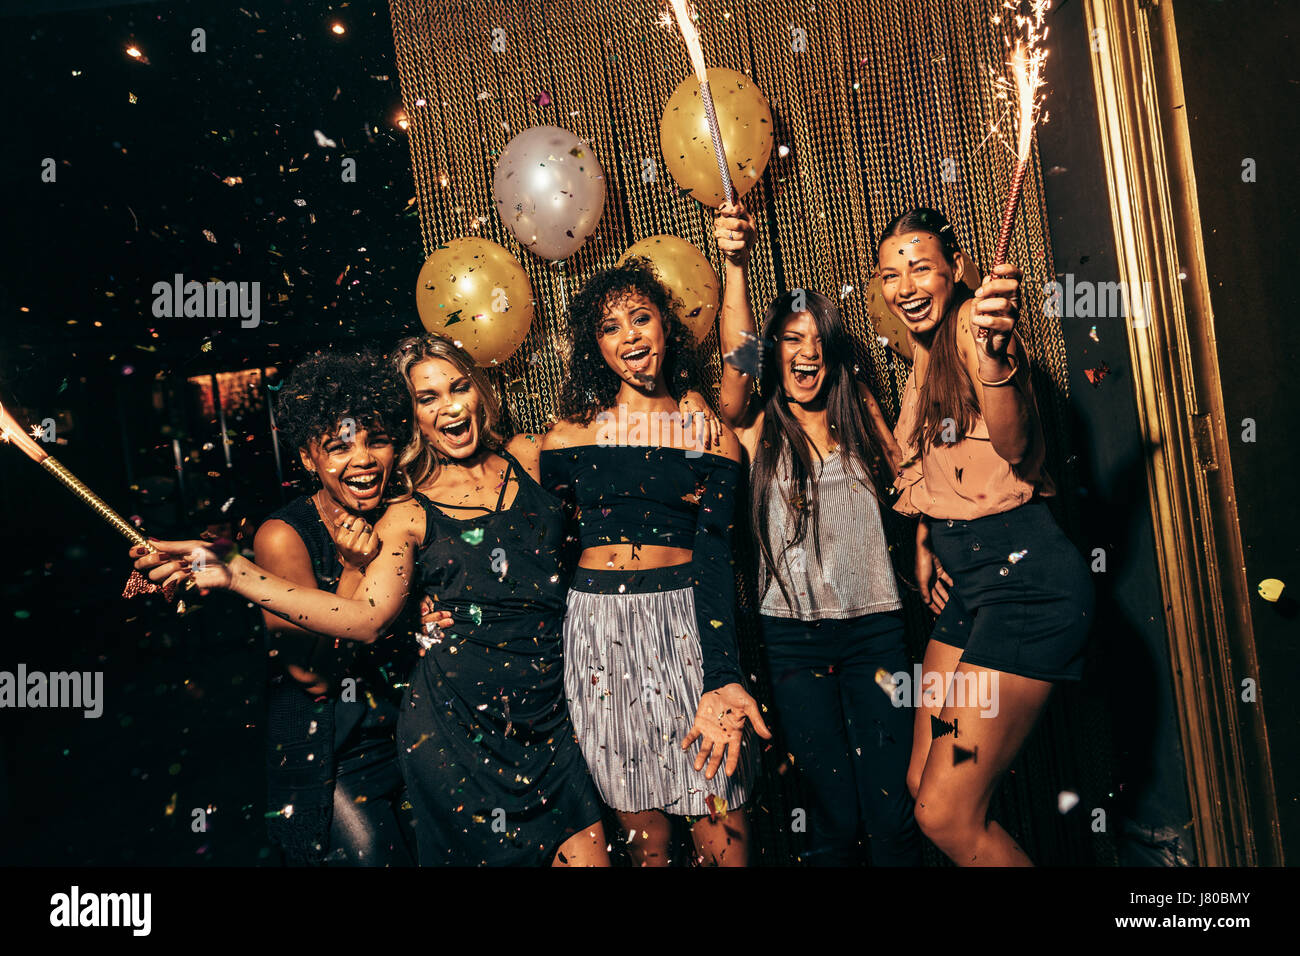 Shot of group of girls in the nightclub having a great time. Group of female friends partying in pub. - Stock Image